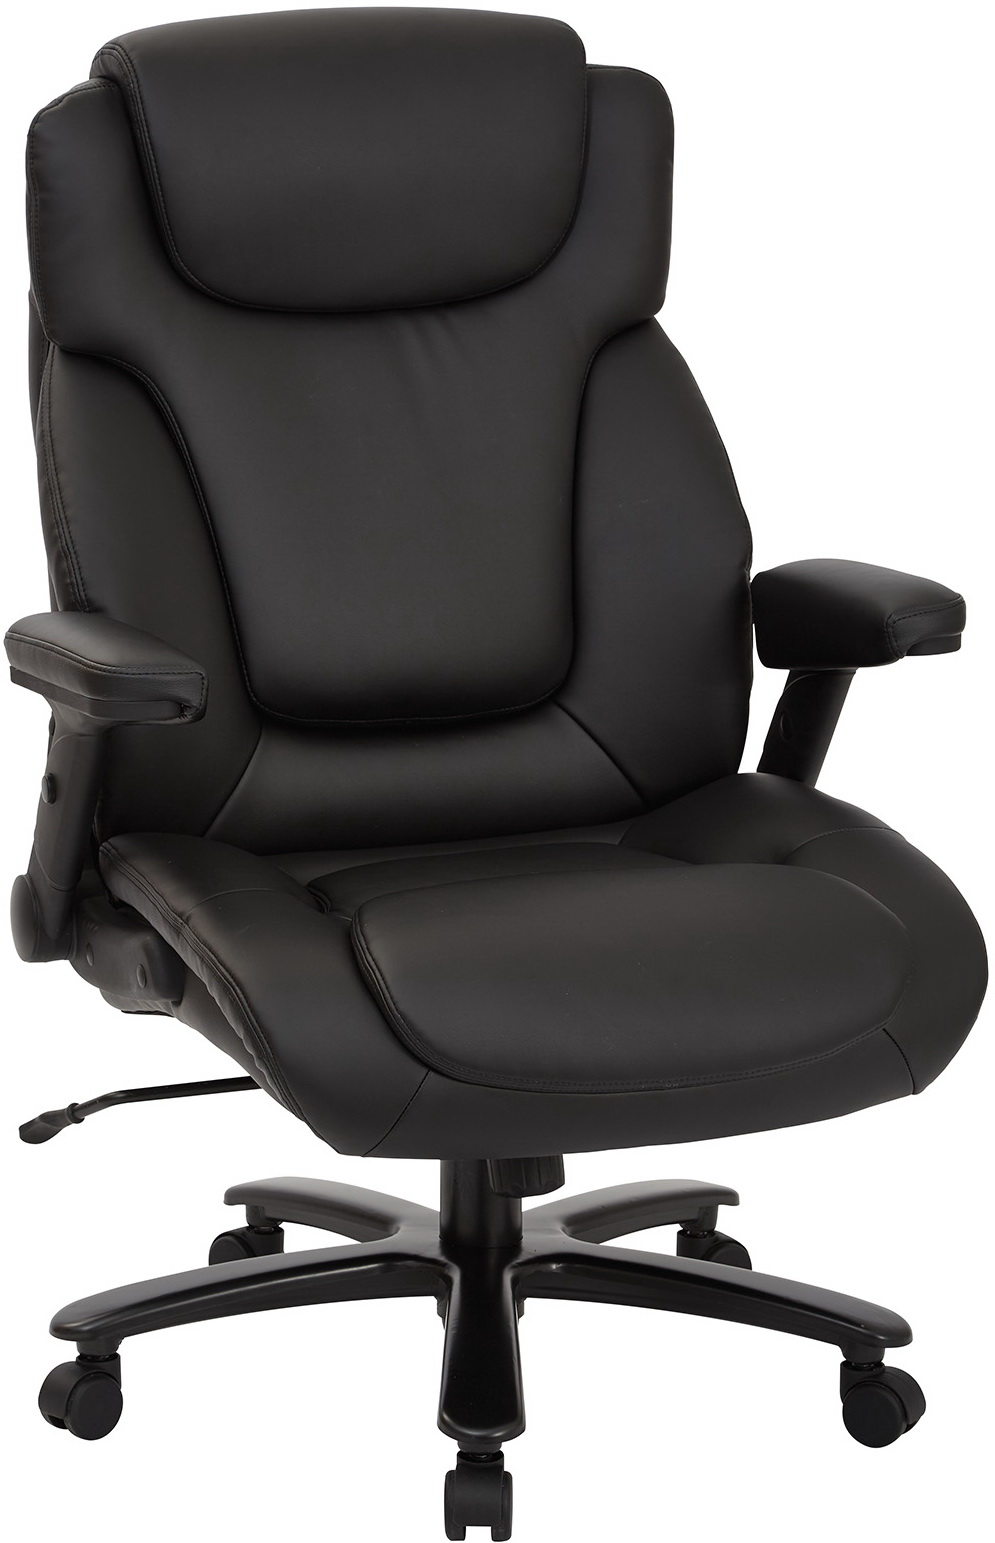 Groovy Pro Line Ii High Back Bonded Leather Big Tall Executive Chair 39200 Beutiful Home Inspiration Aditmahrainfo